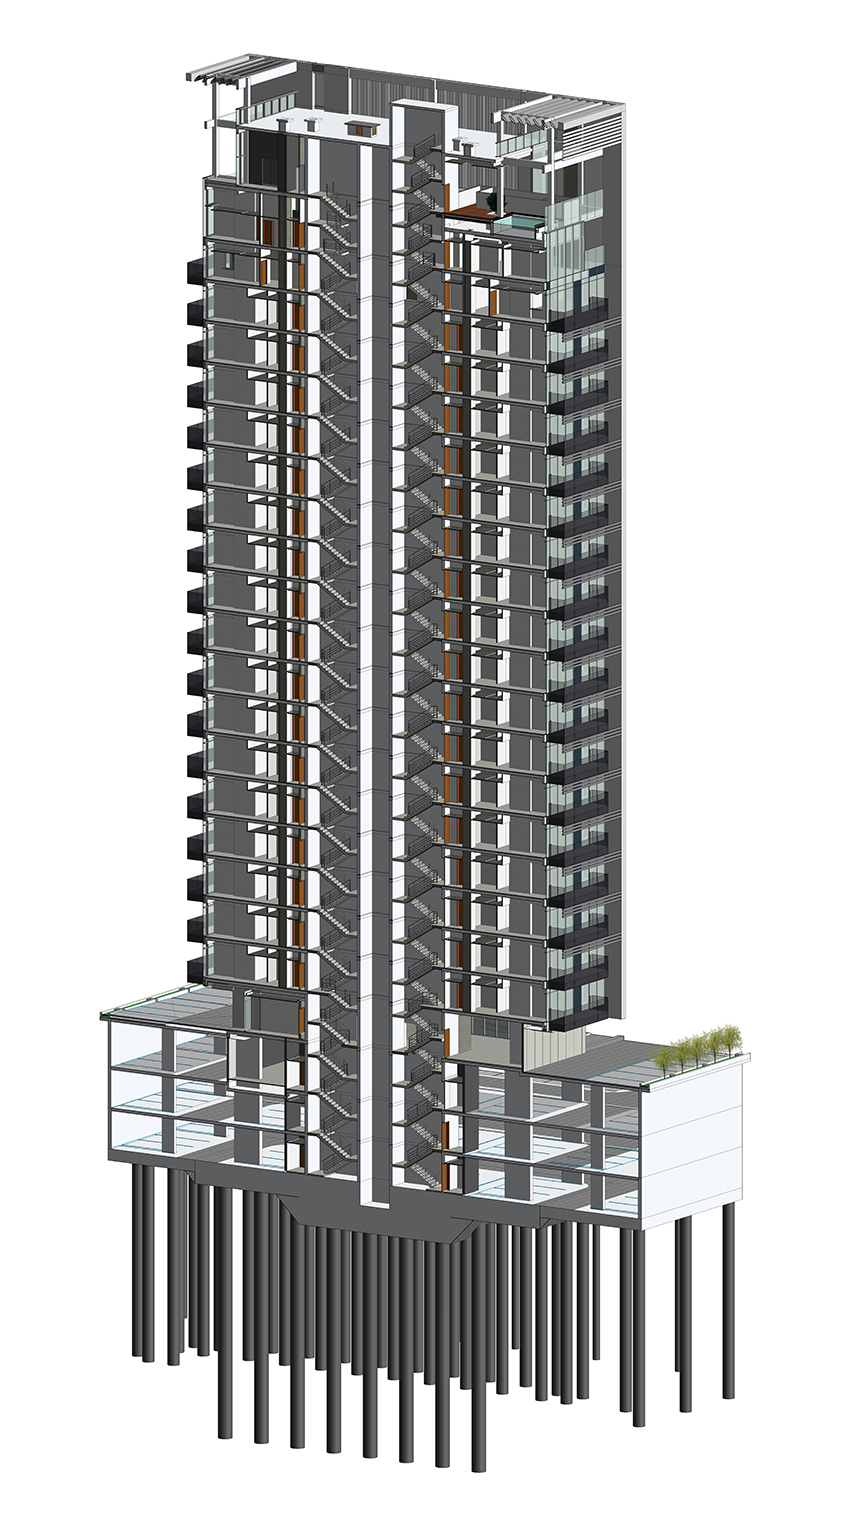 model of an apartment building